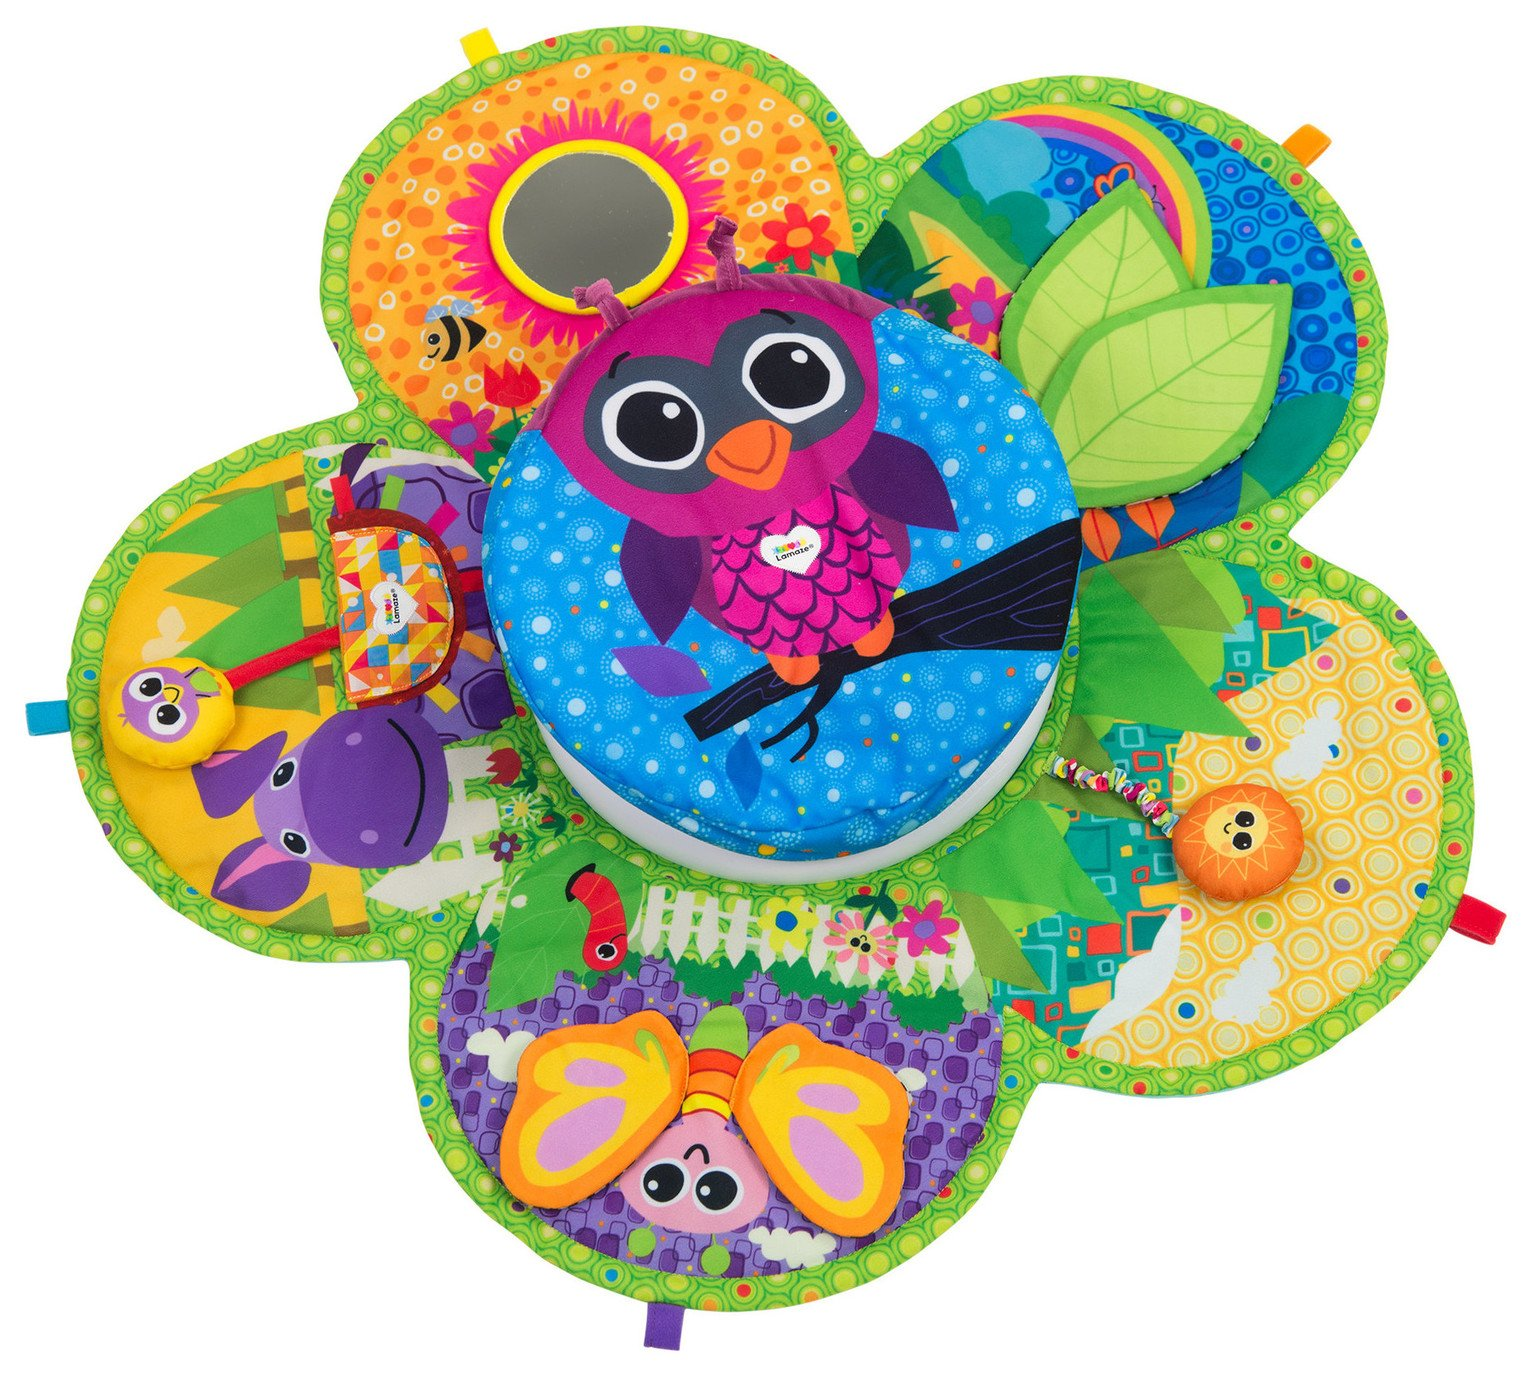 Lamaze Spin & Explore Garden Gym Olivia the Owl